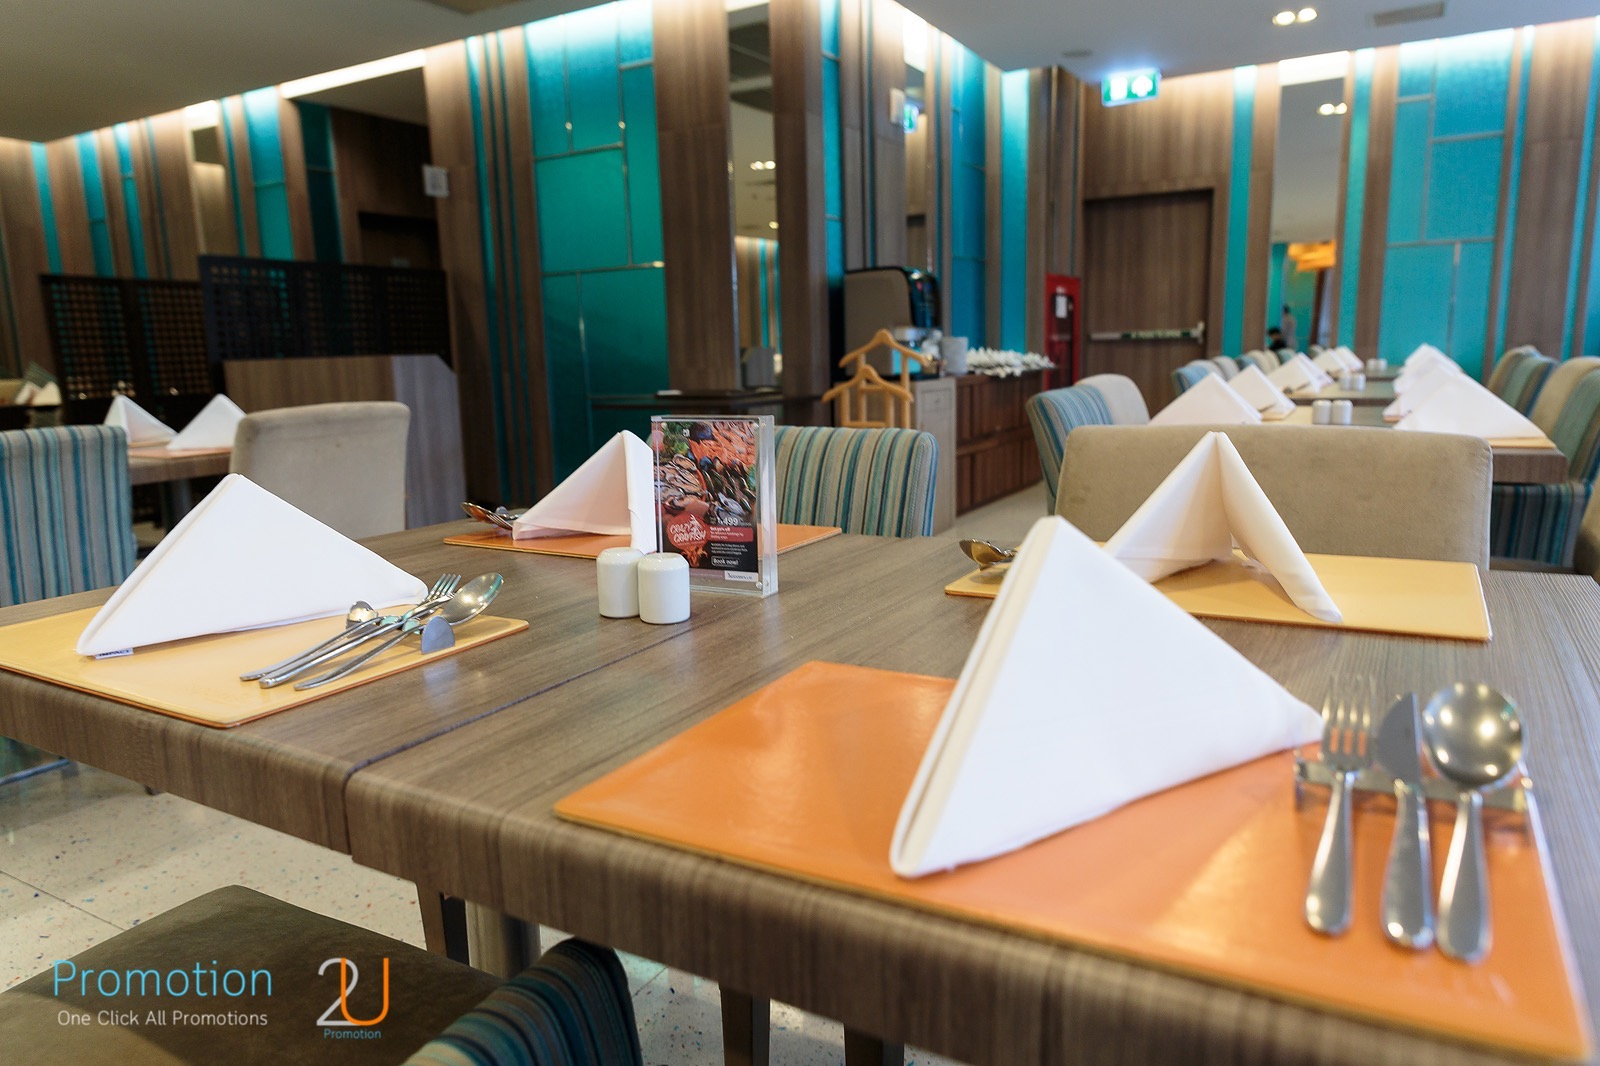 Review promotion muangthong koongtung bufft at the suare novotel impact P153